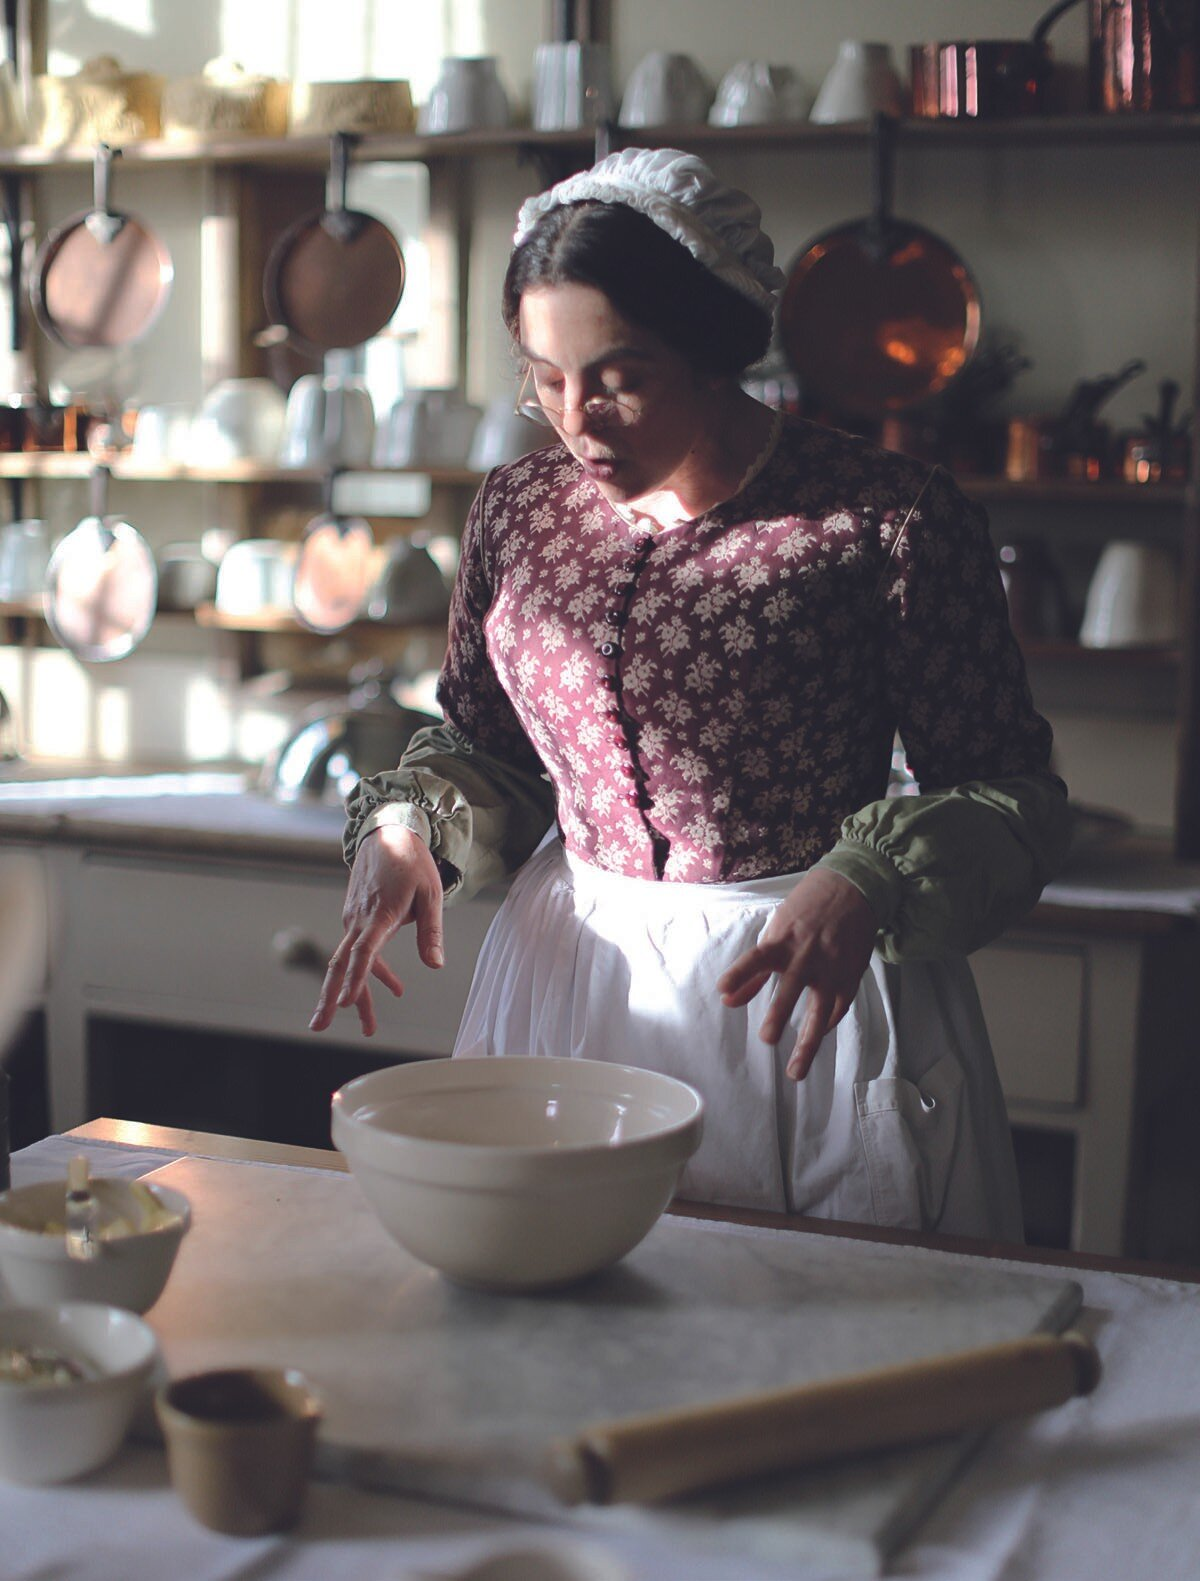 Avis Crocombe in he kitchen at Audley End House